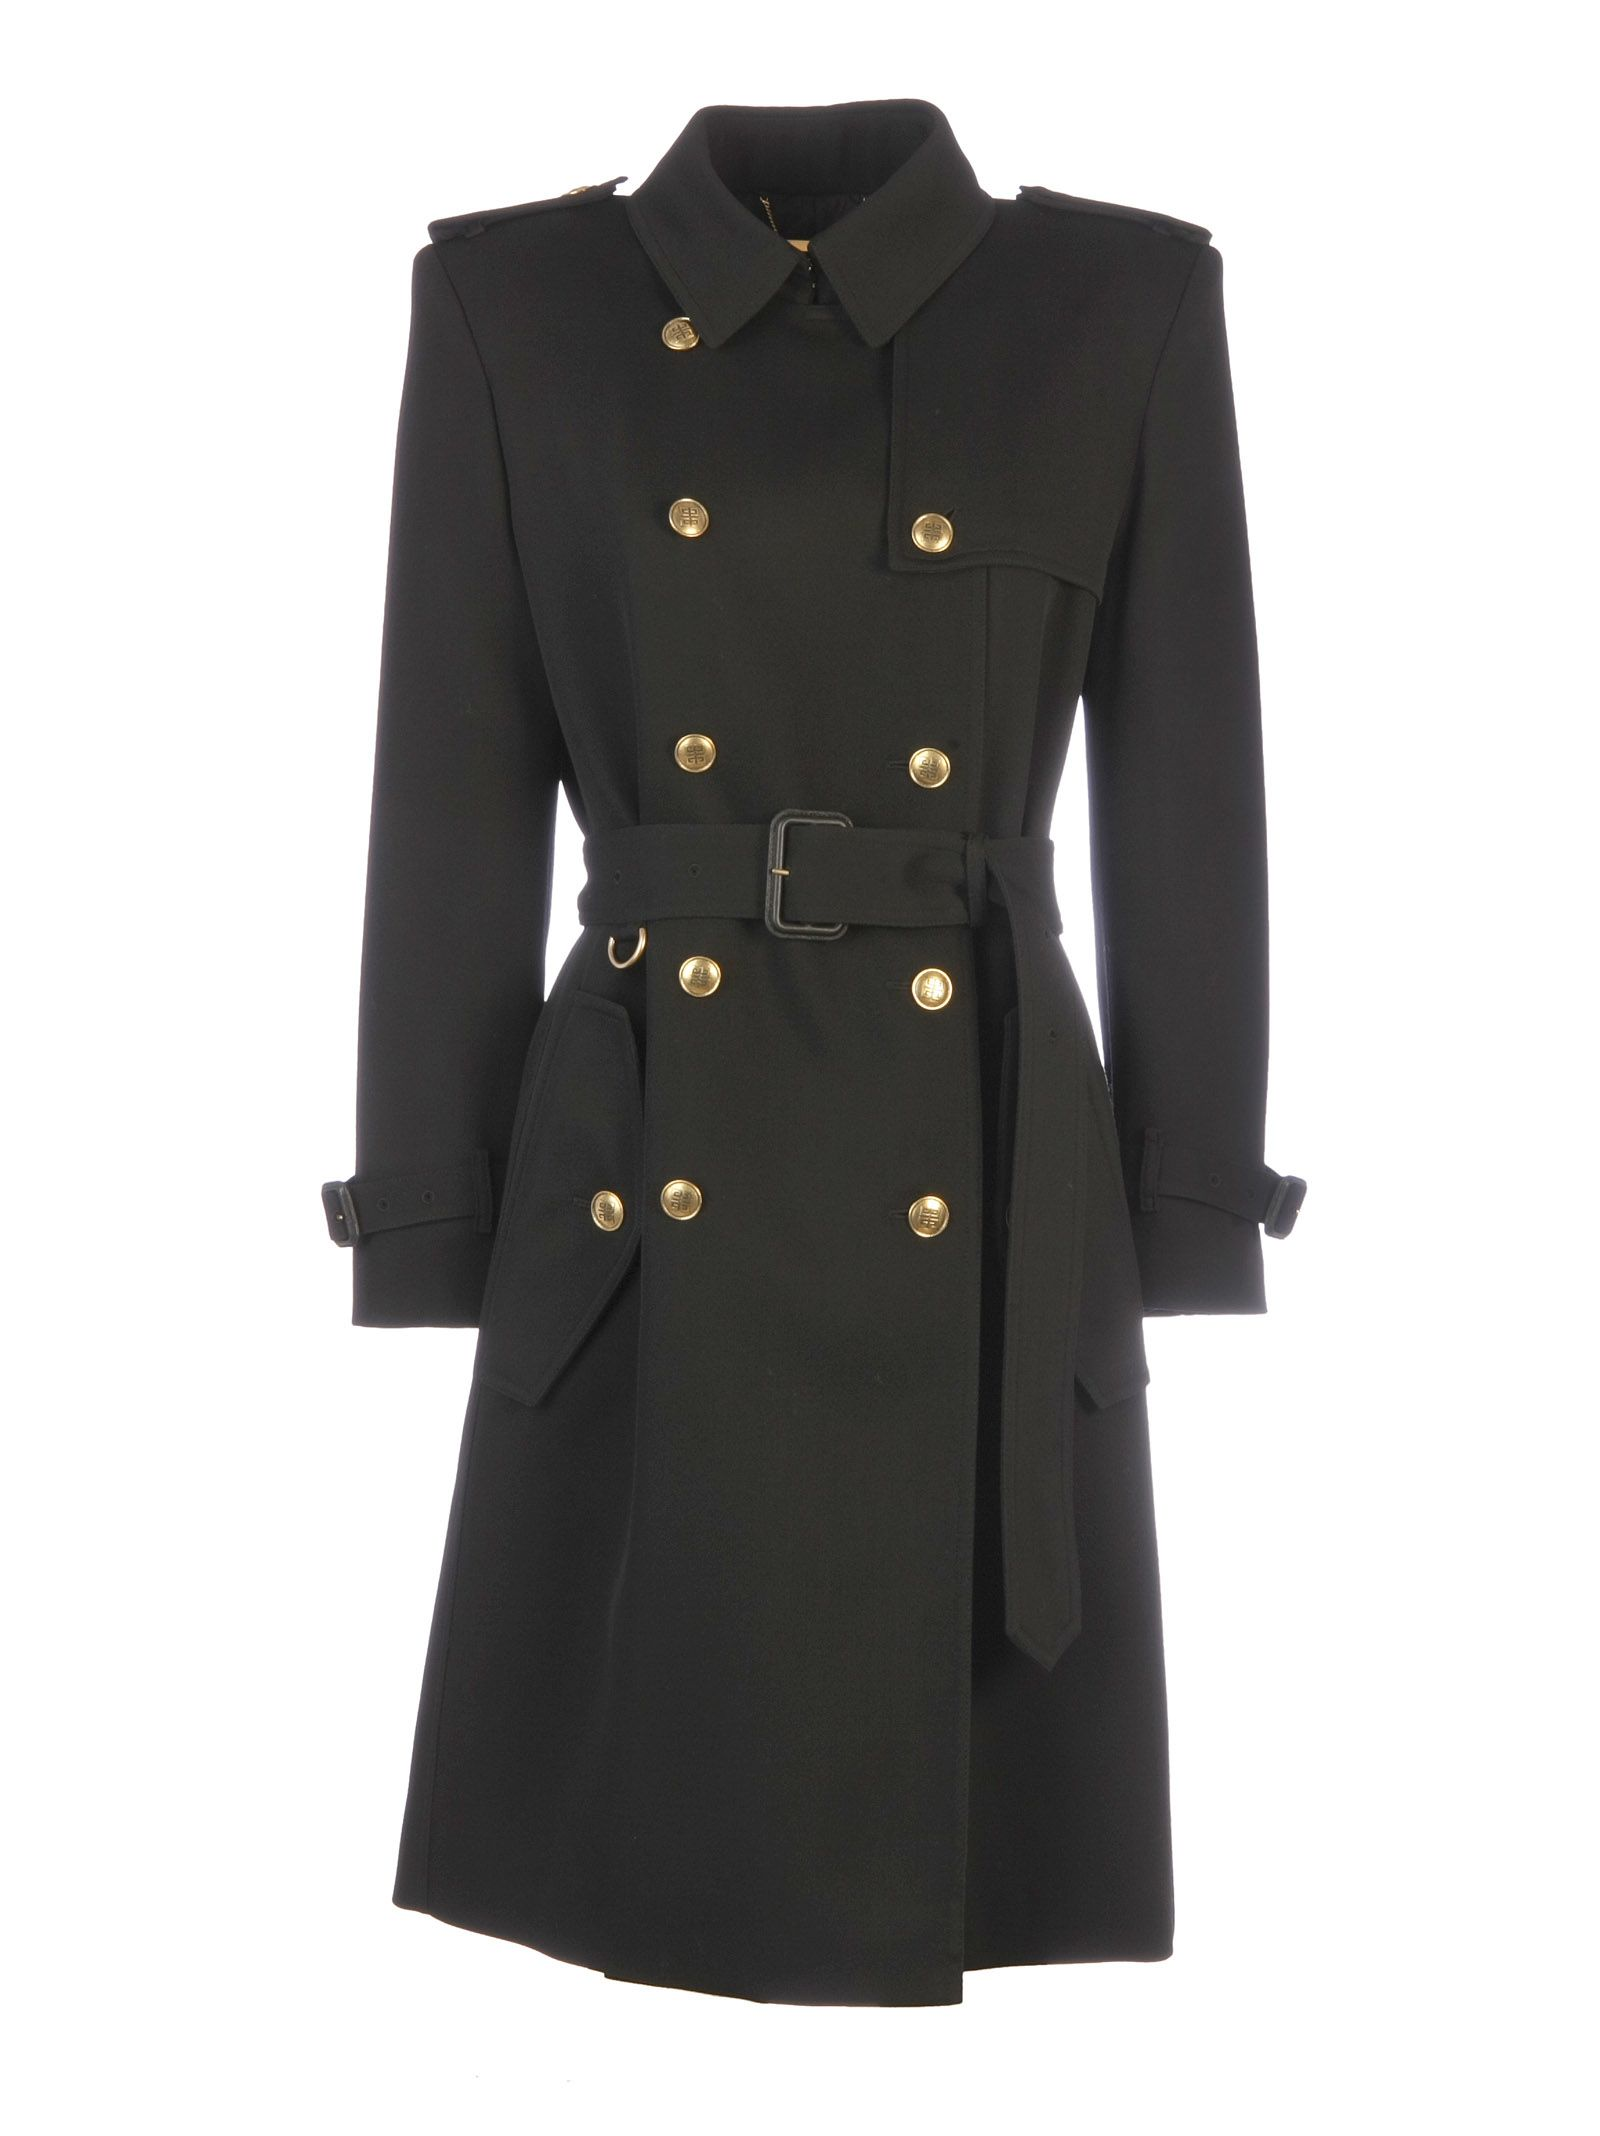 Givenchy Military Trench